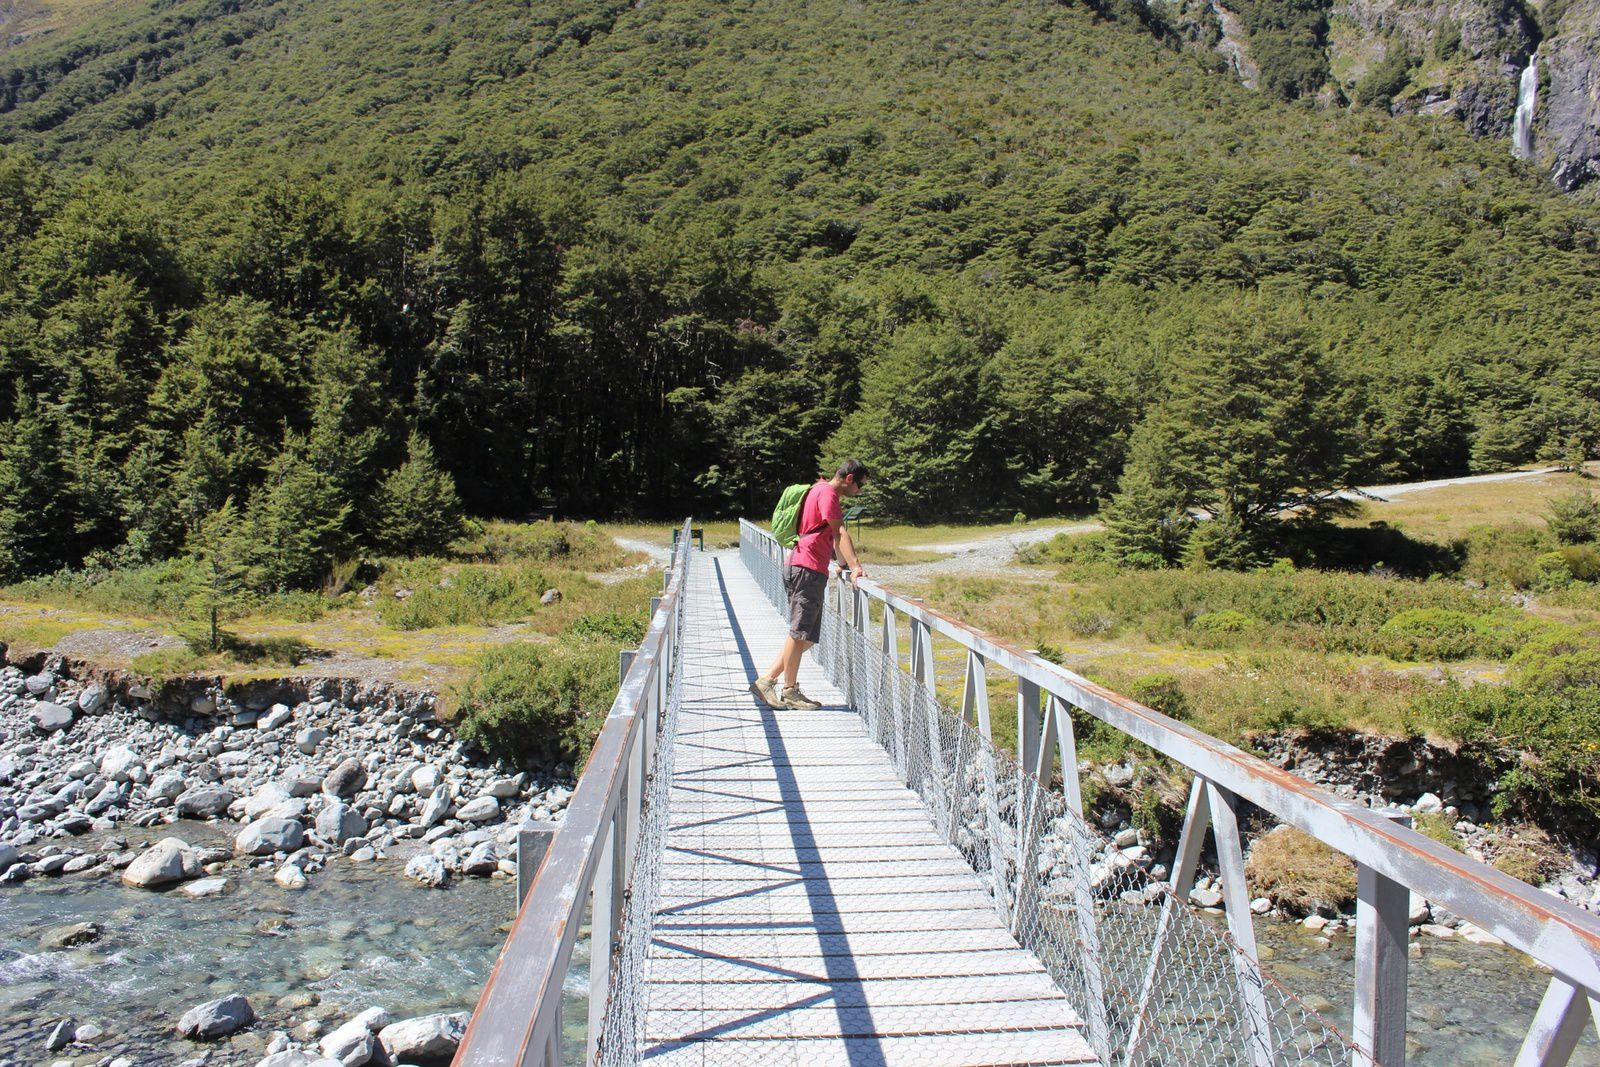 Arthur Pass Camille Mehdi In New Zealand Over Blog Com